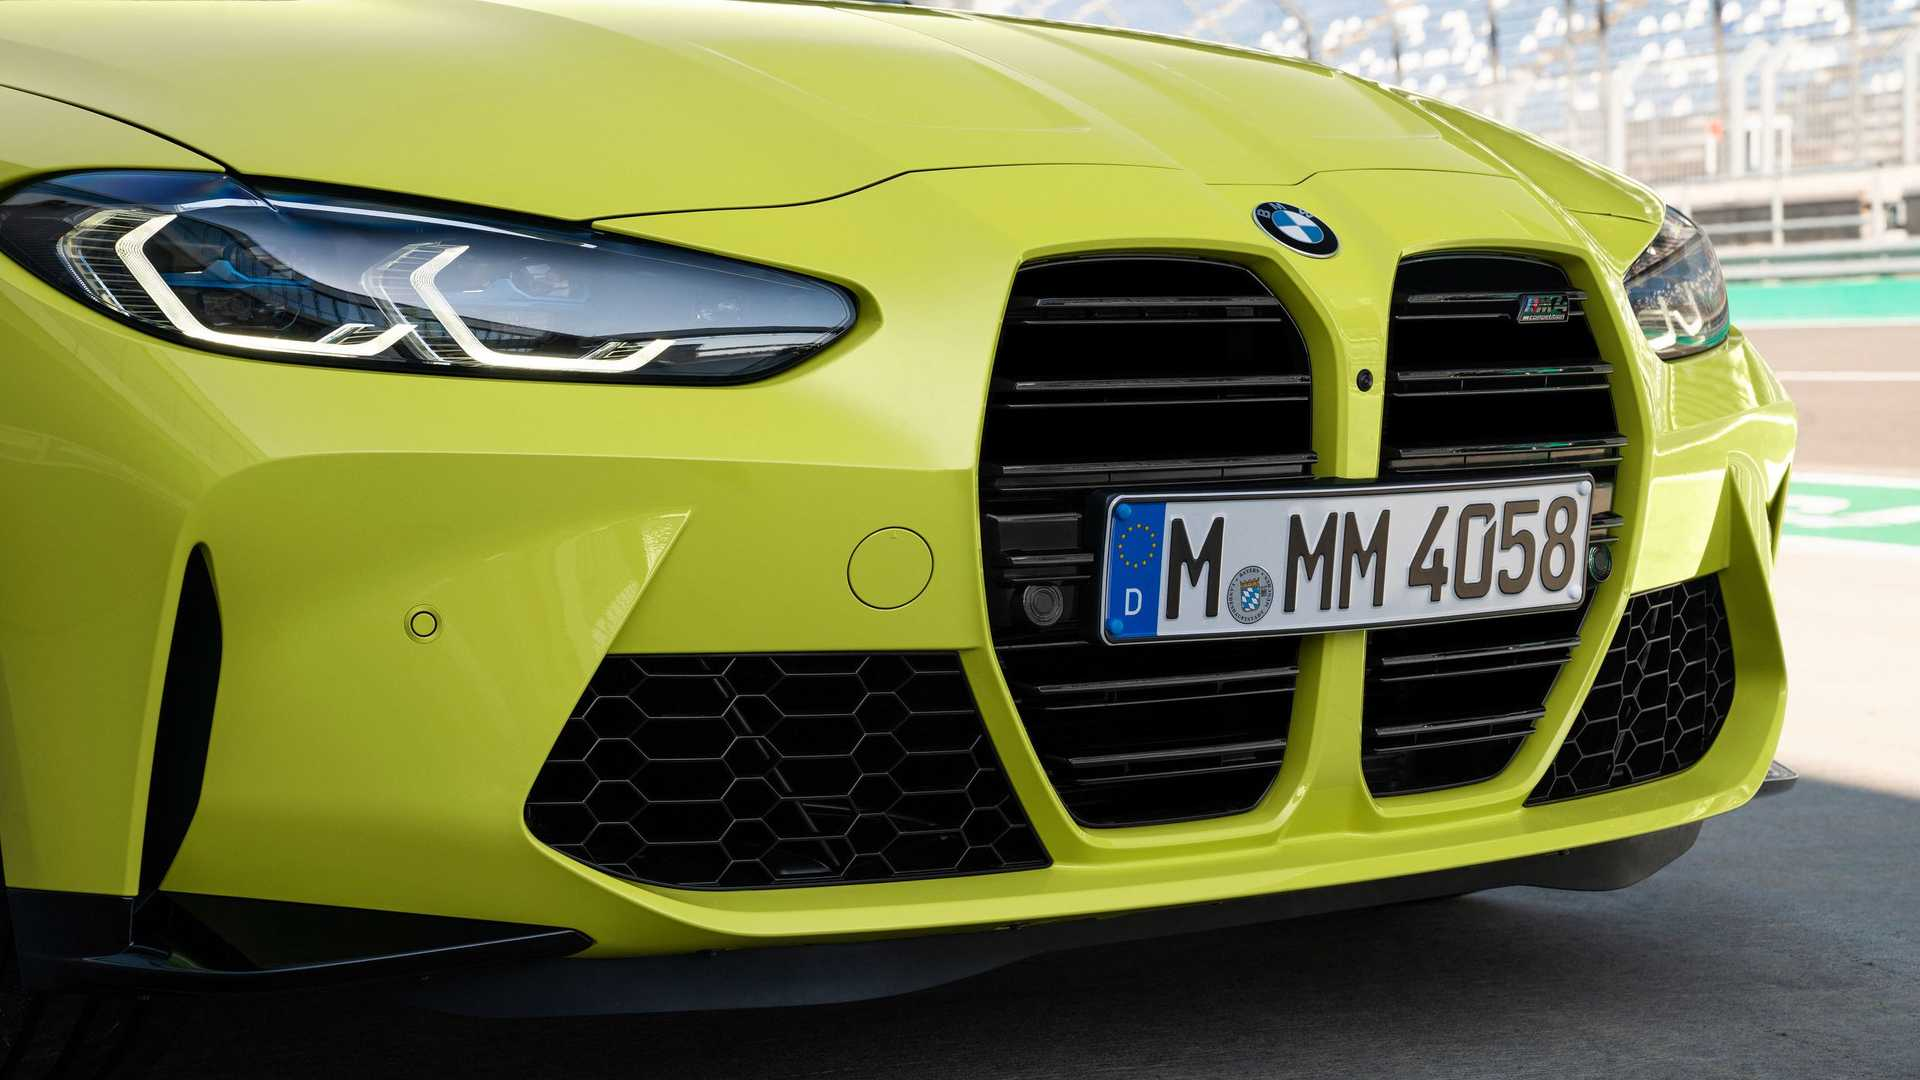 2021 BMW M4 Front Grille